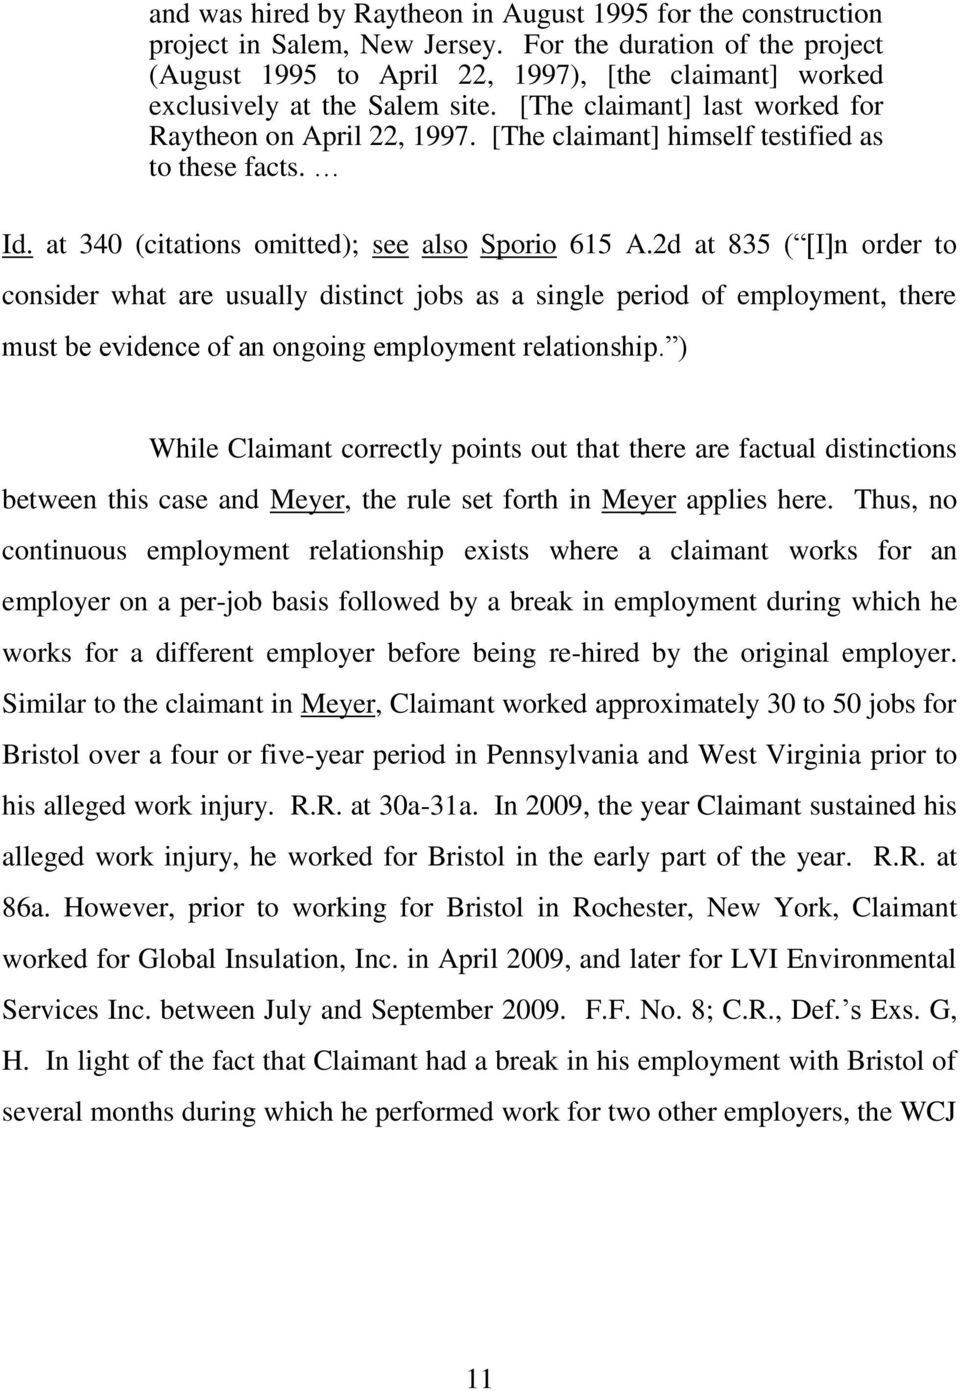 [The claimant] himself testified as to these facts. Id. at 340 (citations omitted); see also Sporio 615 A.